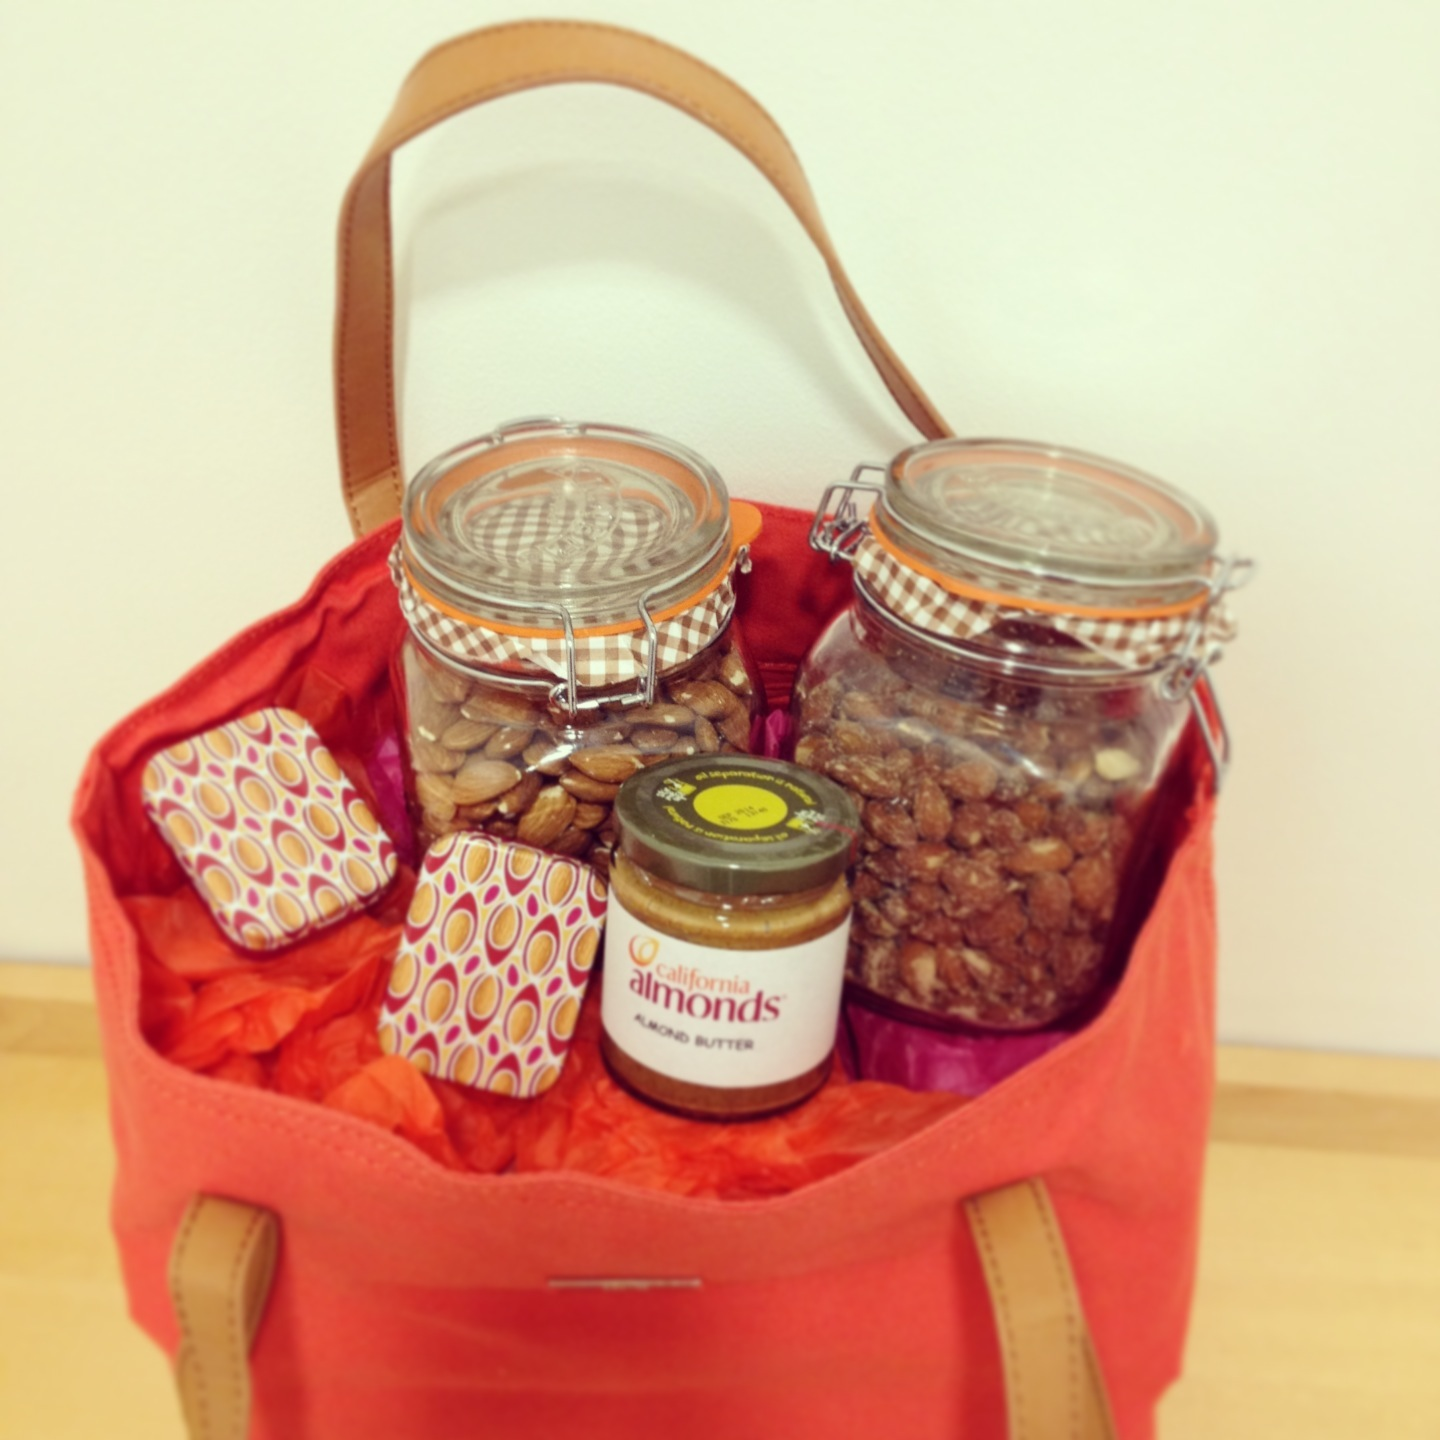 Dietitian UK: Almond Hamper Giveaway